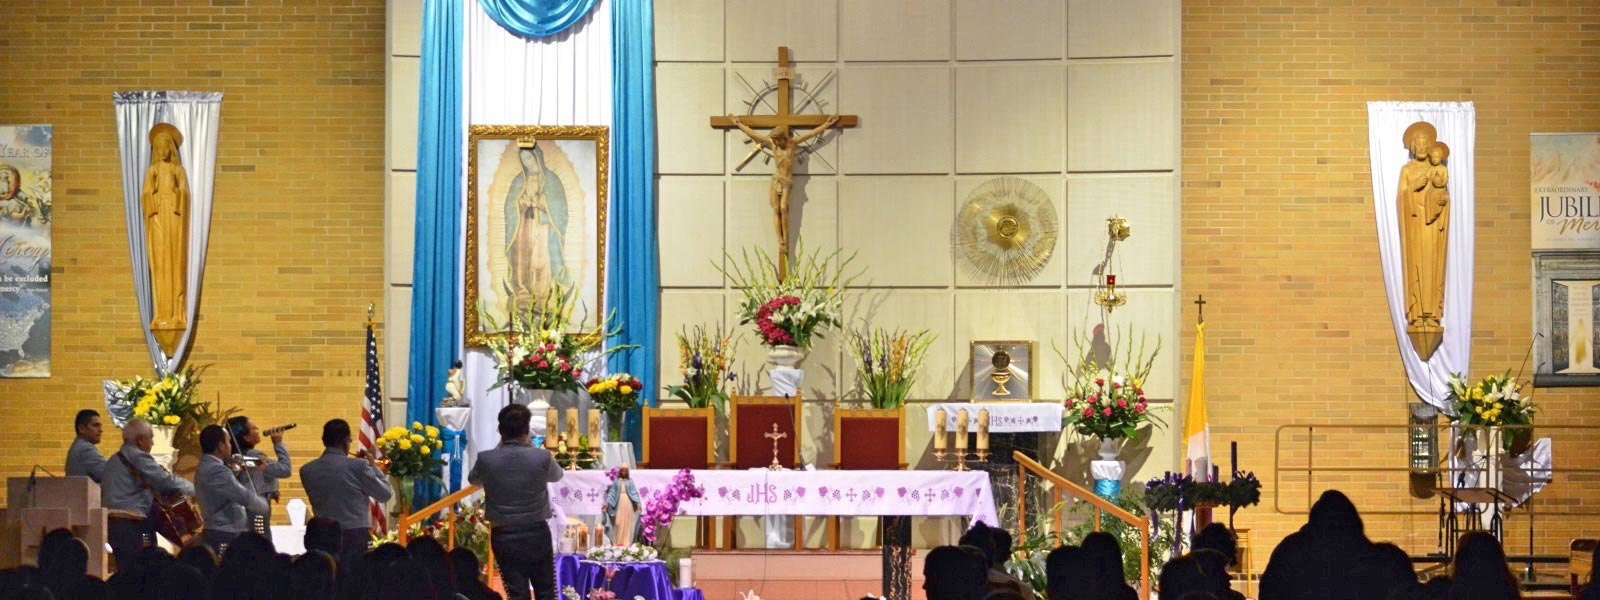 Our Lady of Guadalupe celebration – Whiling, IL St Joseph the Worker Parish